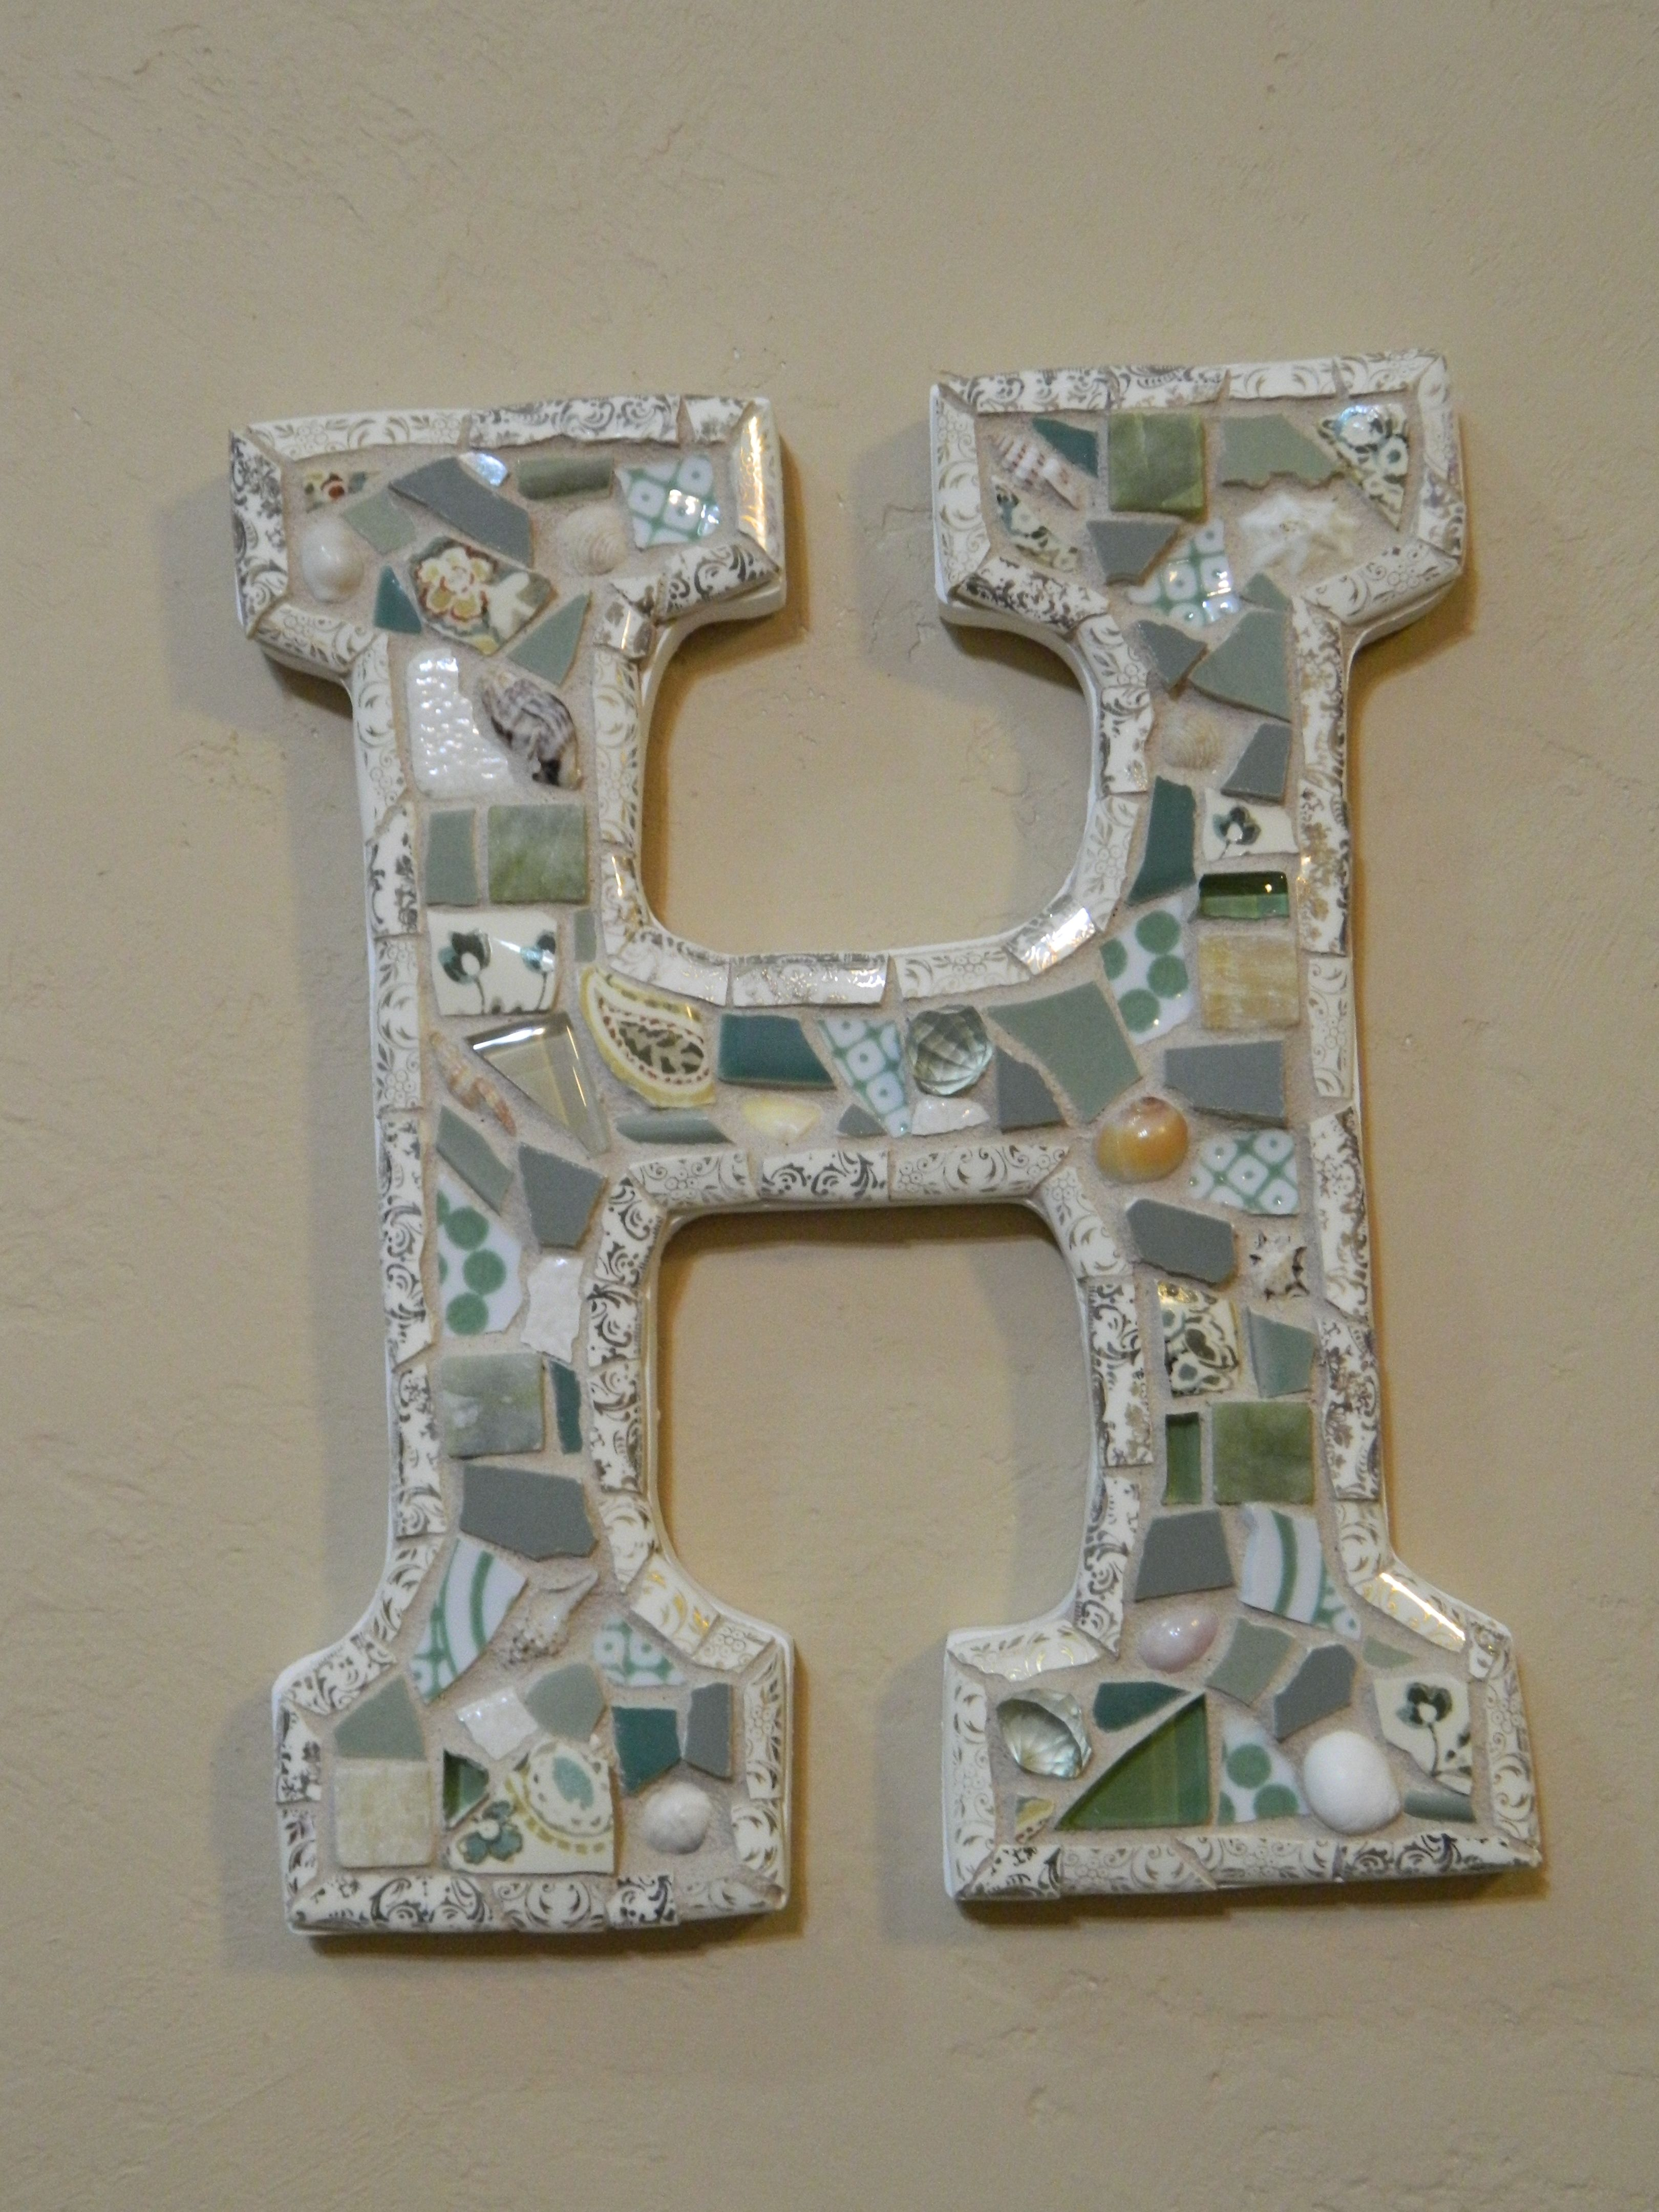 Gmail beach theme pictures - Mosaic H Cream Gold Outline Sage Green And Beach Theme Made By